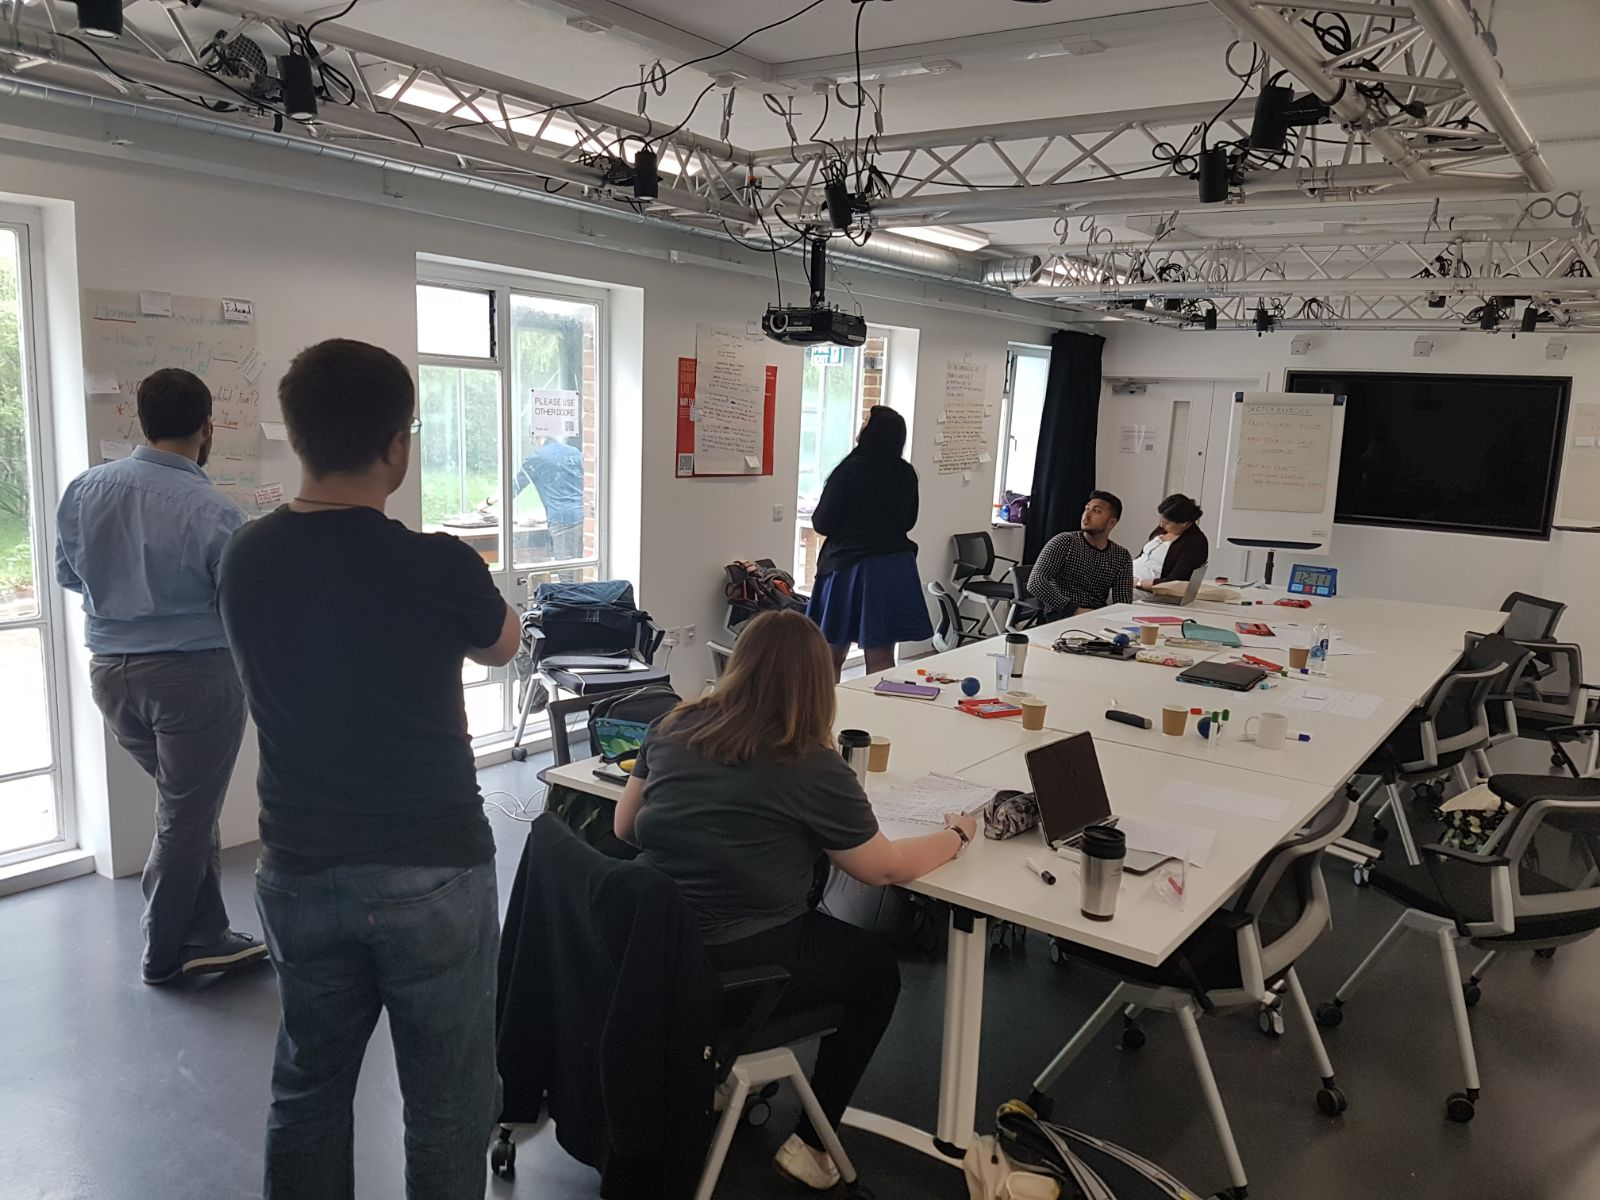 #hivebooksprint We havd started our Book Sprint and it's getting more and more exciting as we go!  @sussexlibrary @SAGE_News @booksprint https://t.co/WDmZAQiZkI